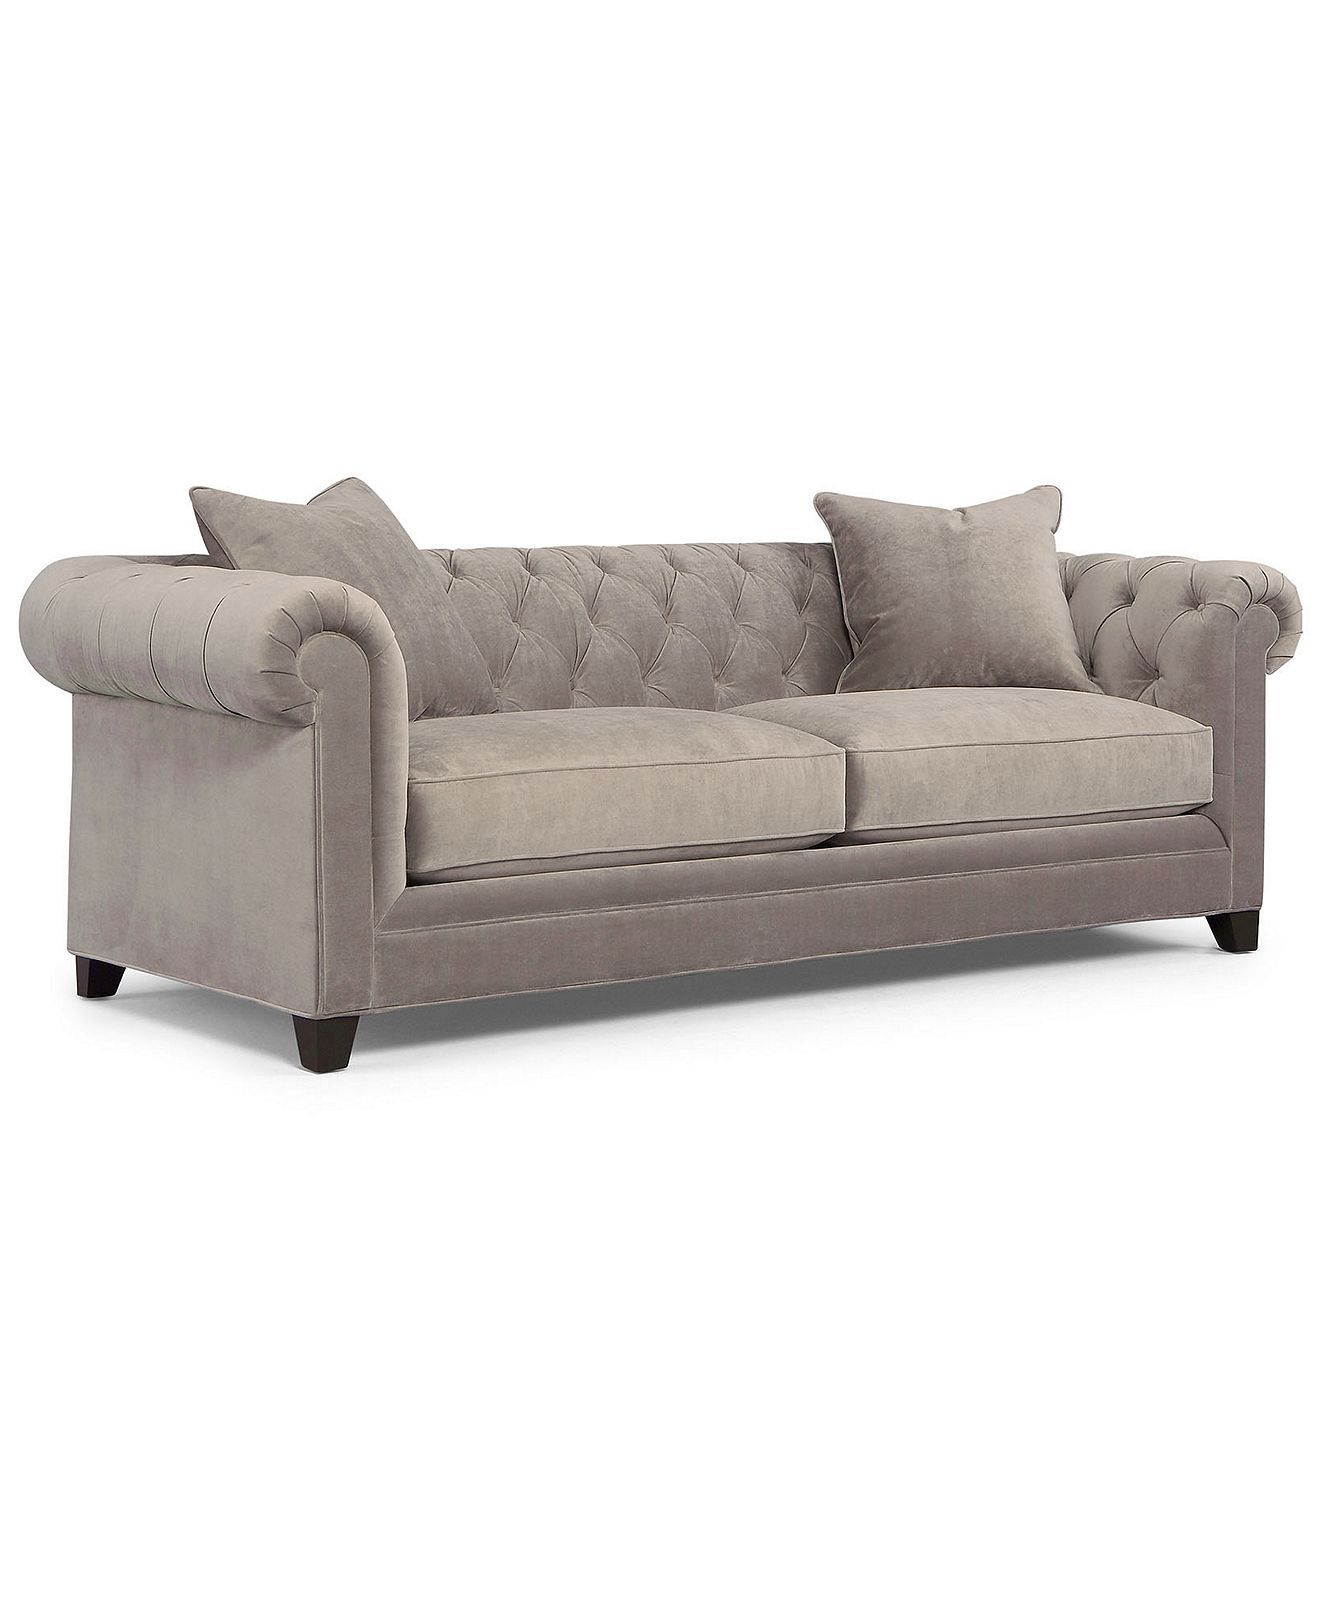 Exceptional Martha Stewart Collection Saybridge Sofa